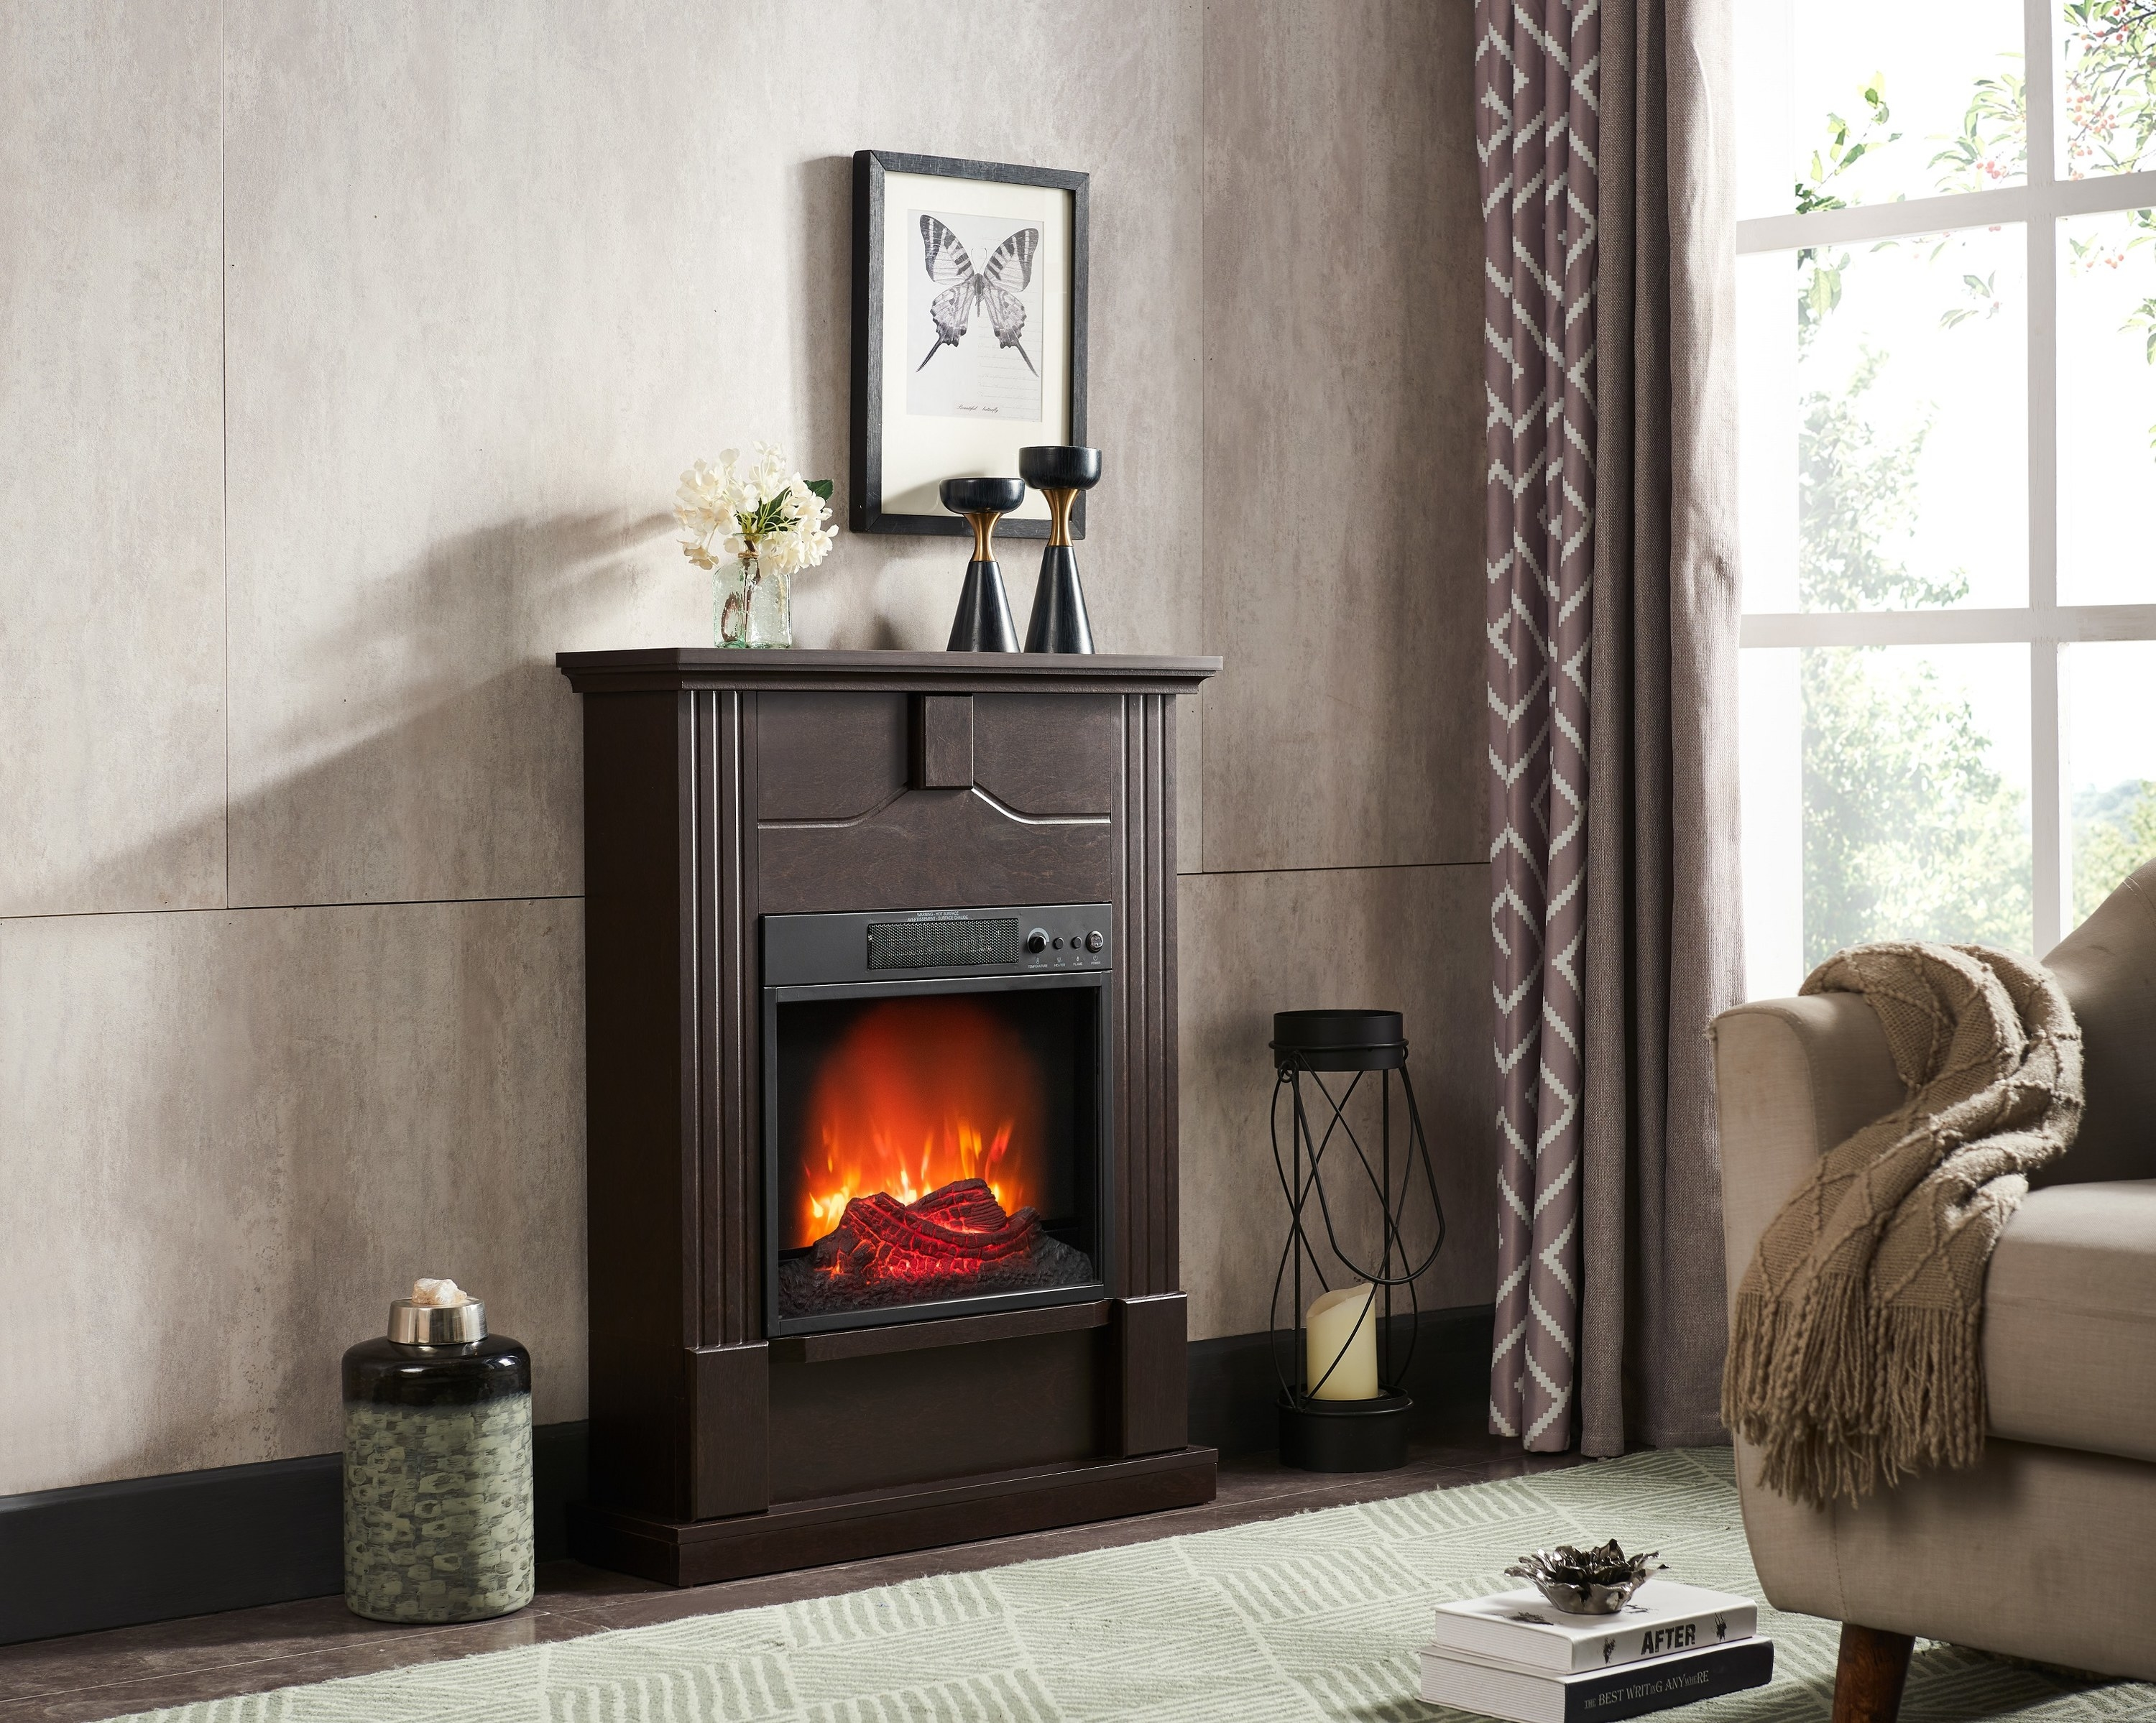 The electric fireplace heater